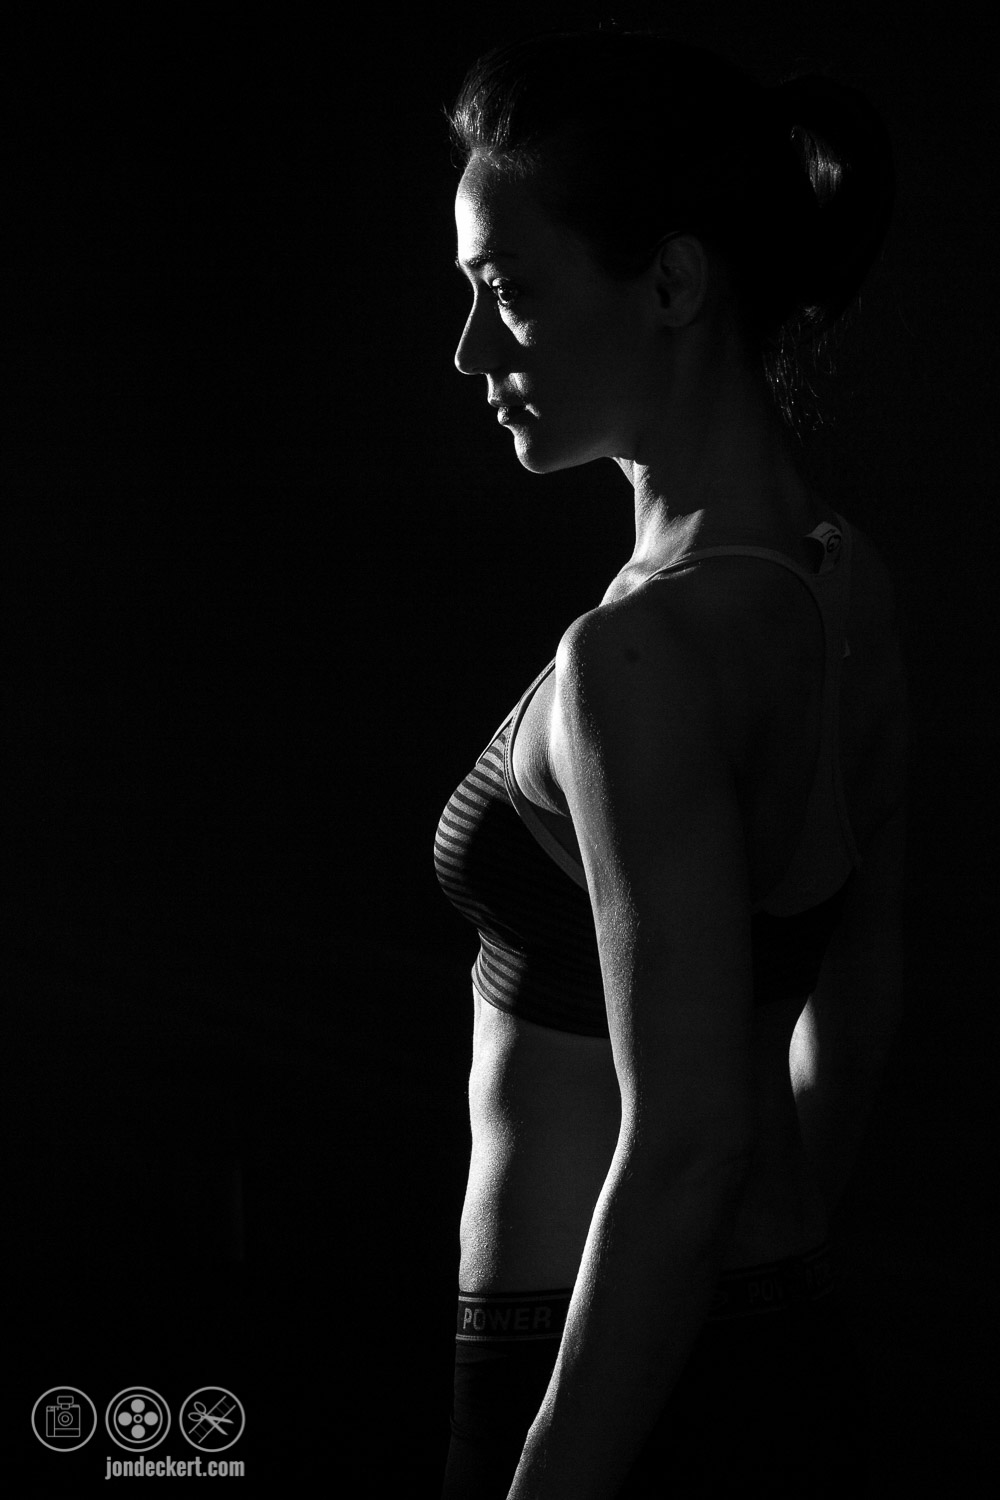 Dawn Hamil Cross Fit Fitness Portrait Photograph